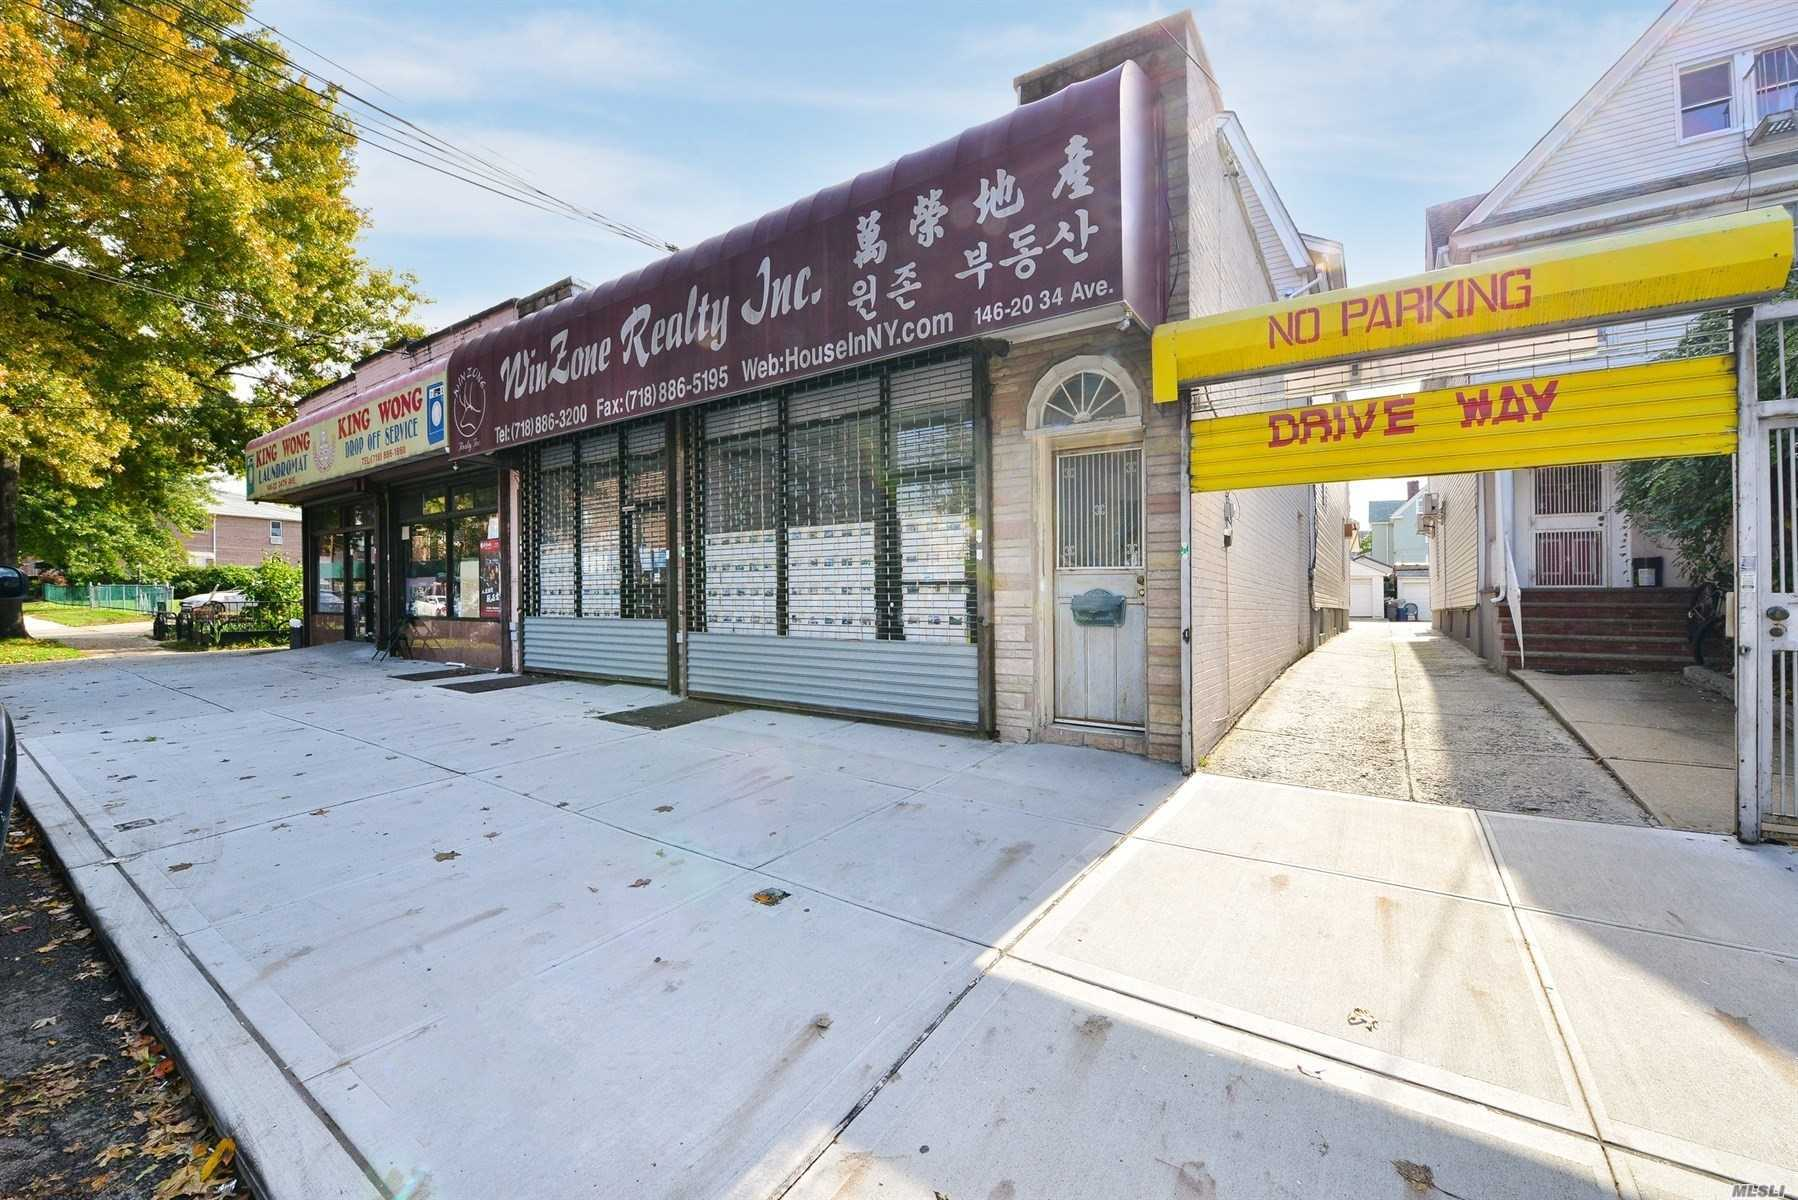 146-20 34th Ave, one of homes for sale in Flushing